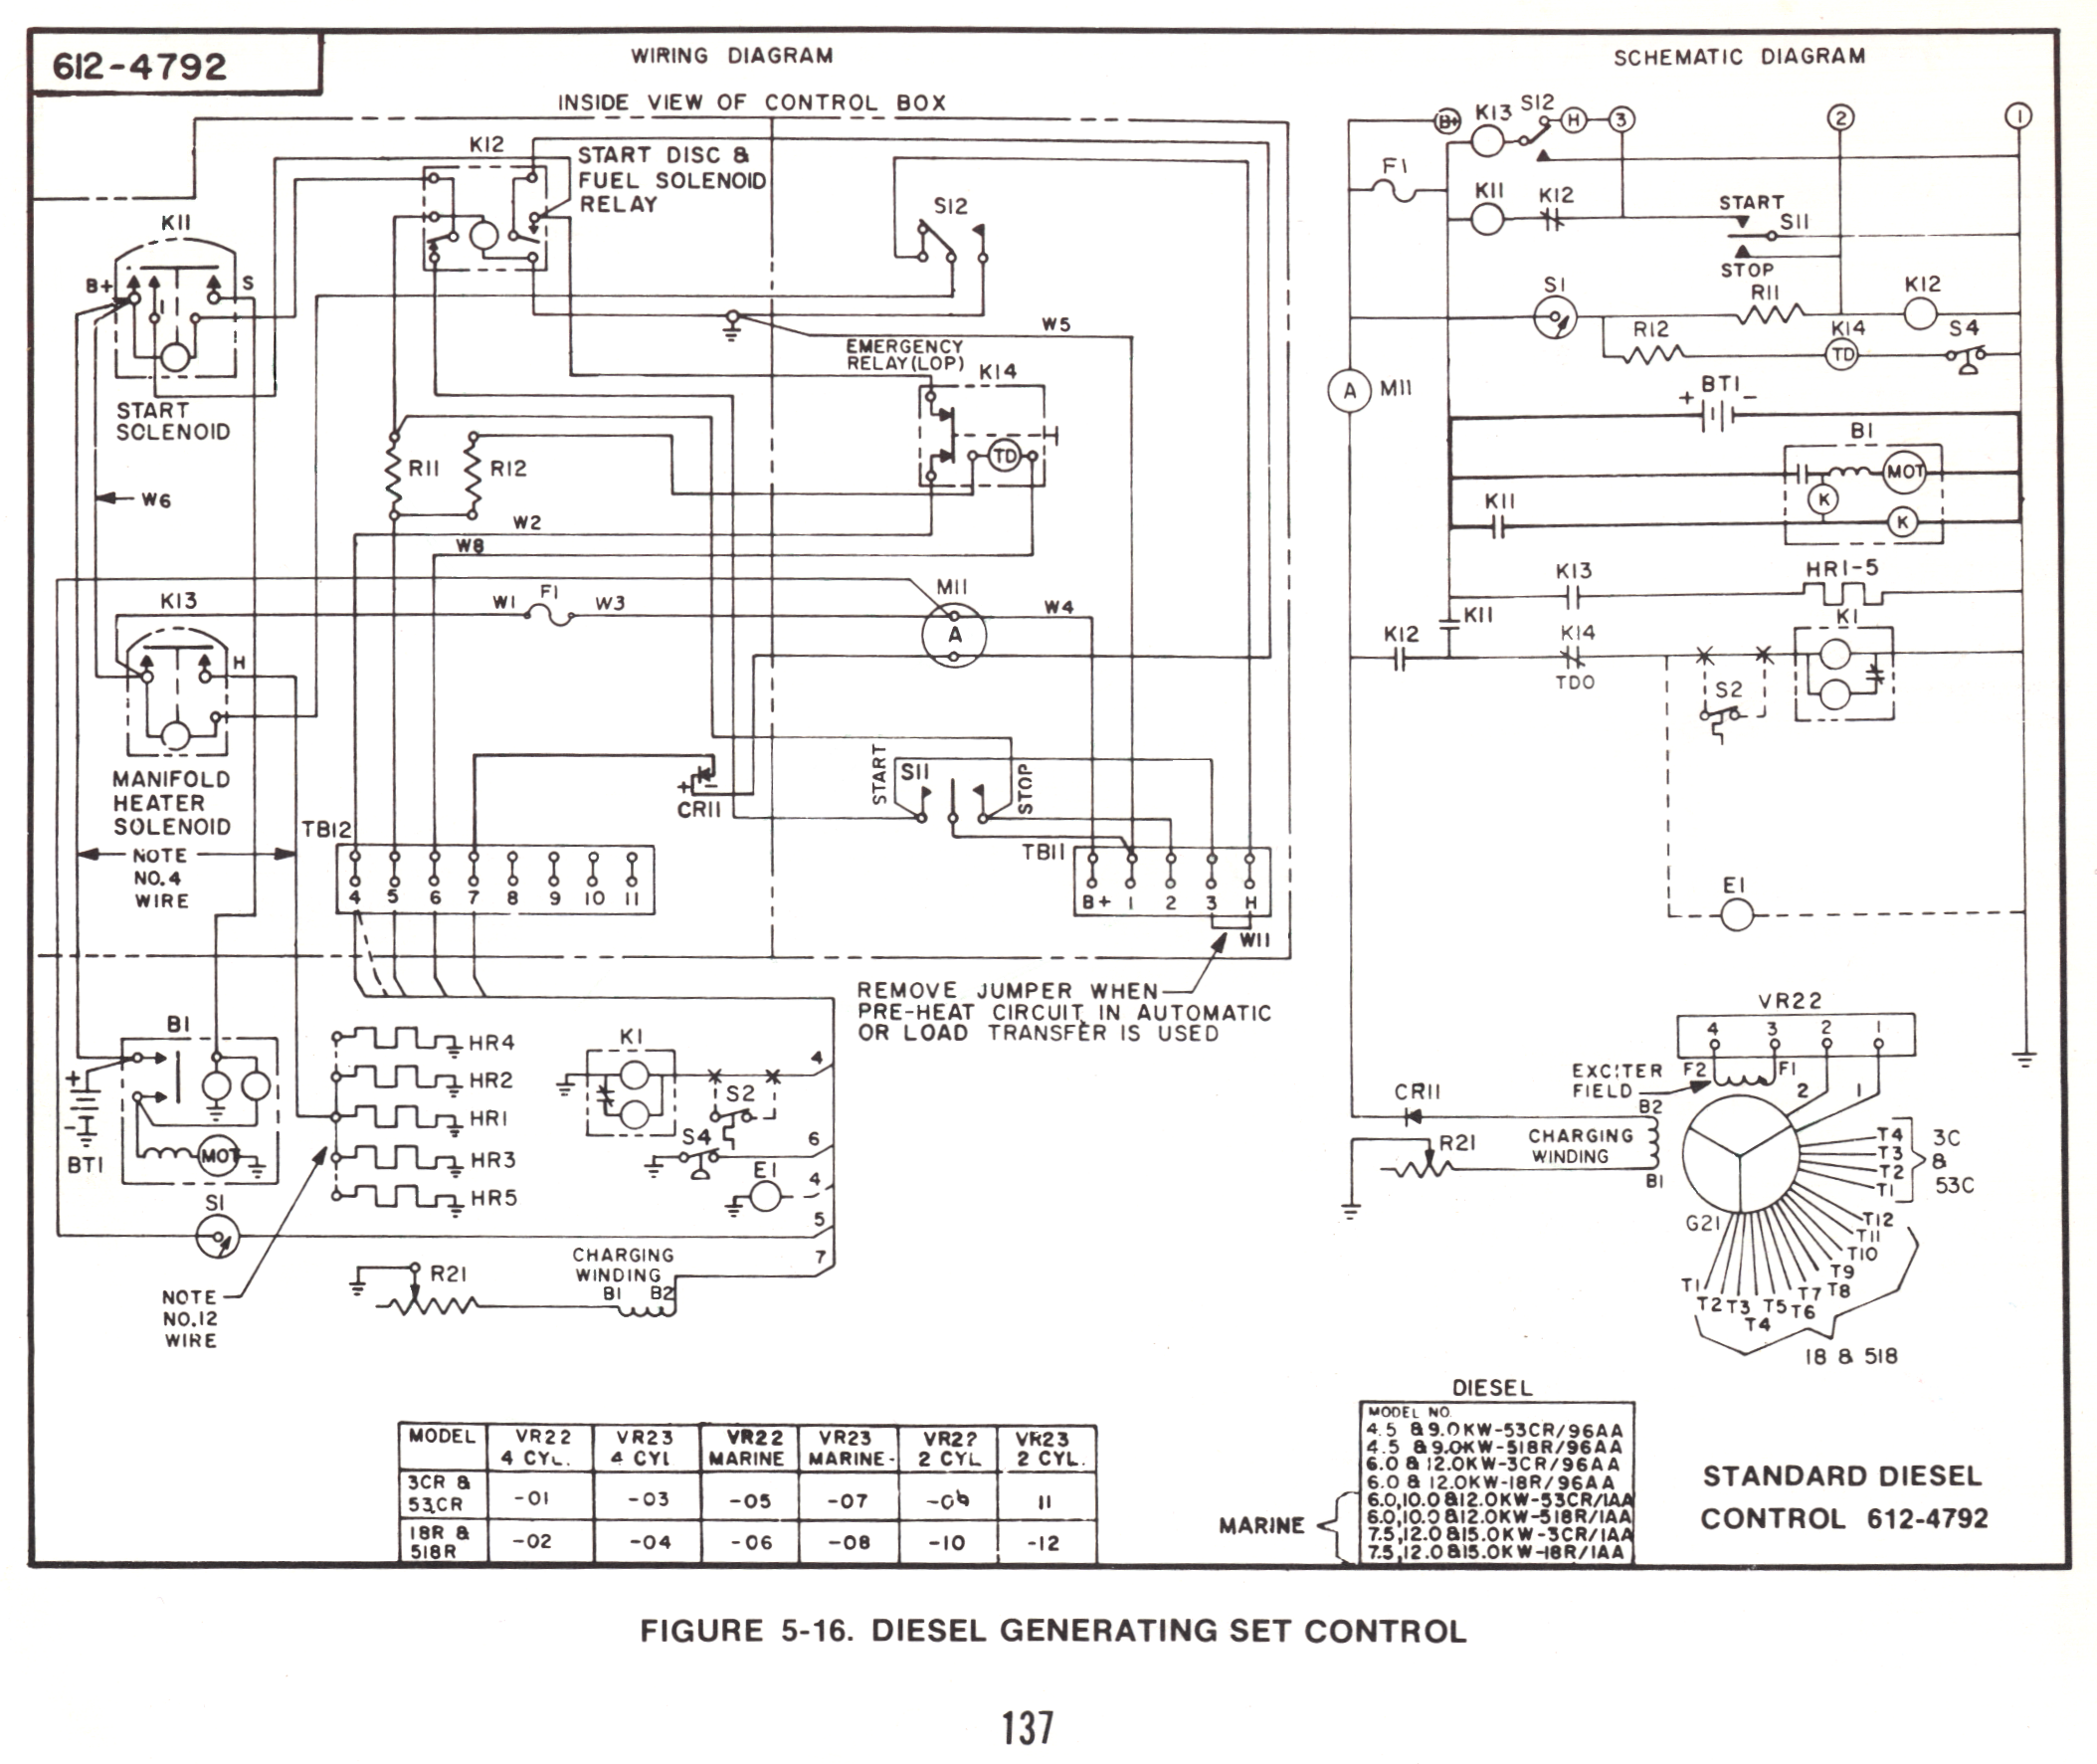 Onan_Diesel_Controls_612 4792_b onan stuff onan rv generator wiring diagram at crackthecode.co